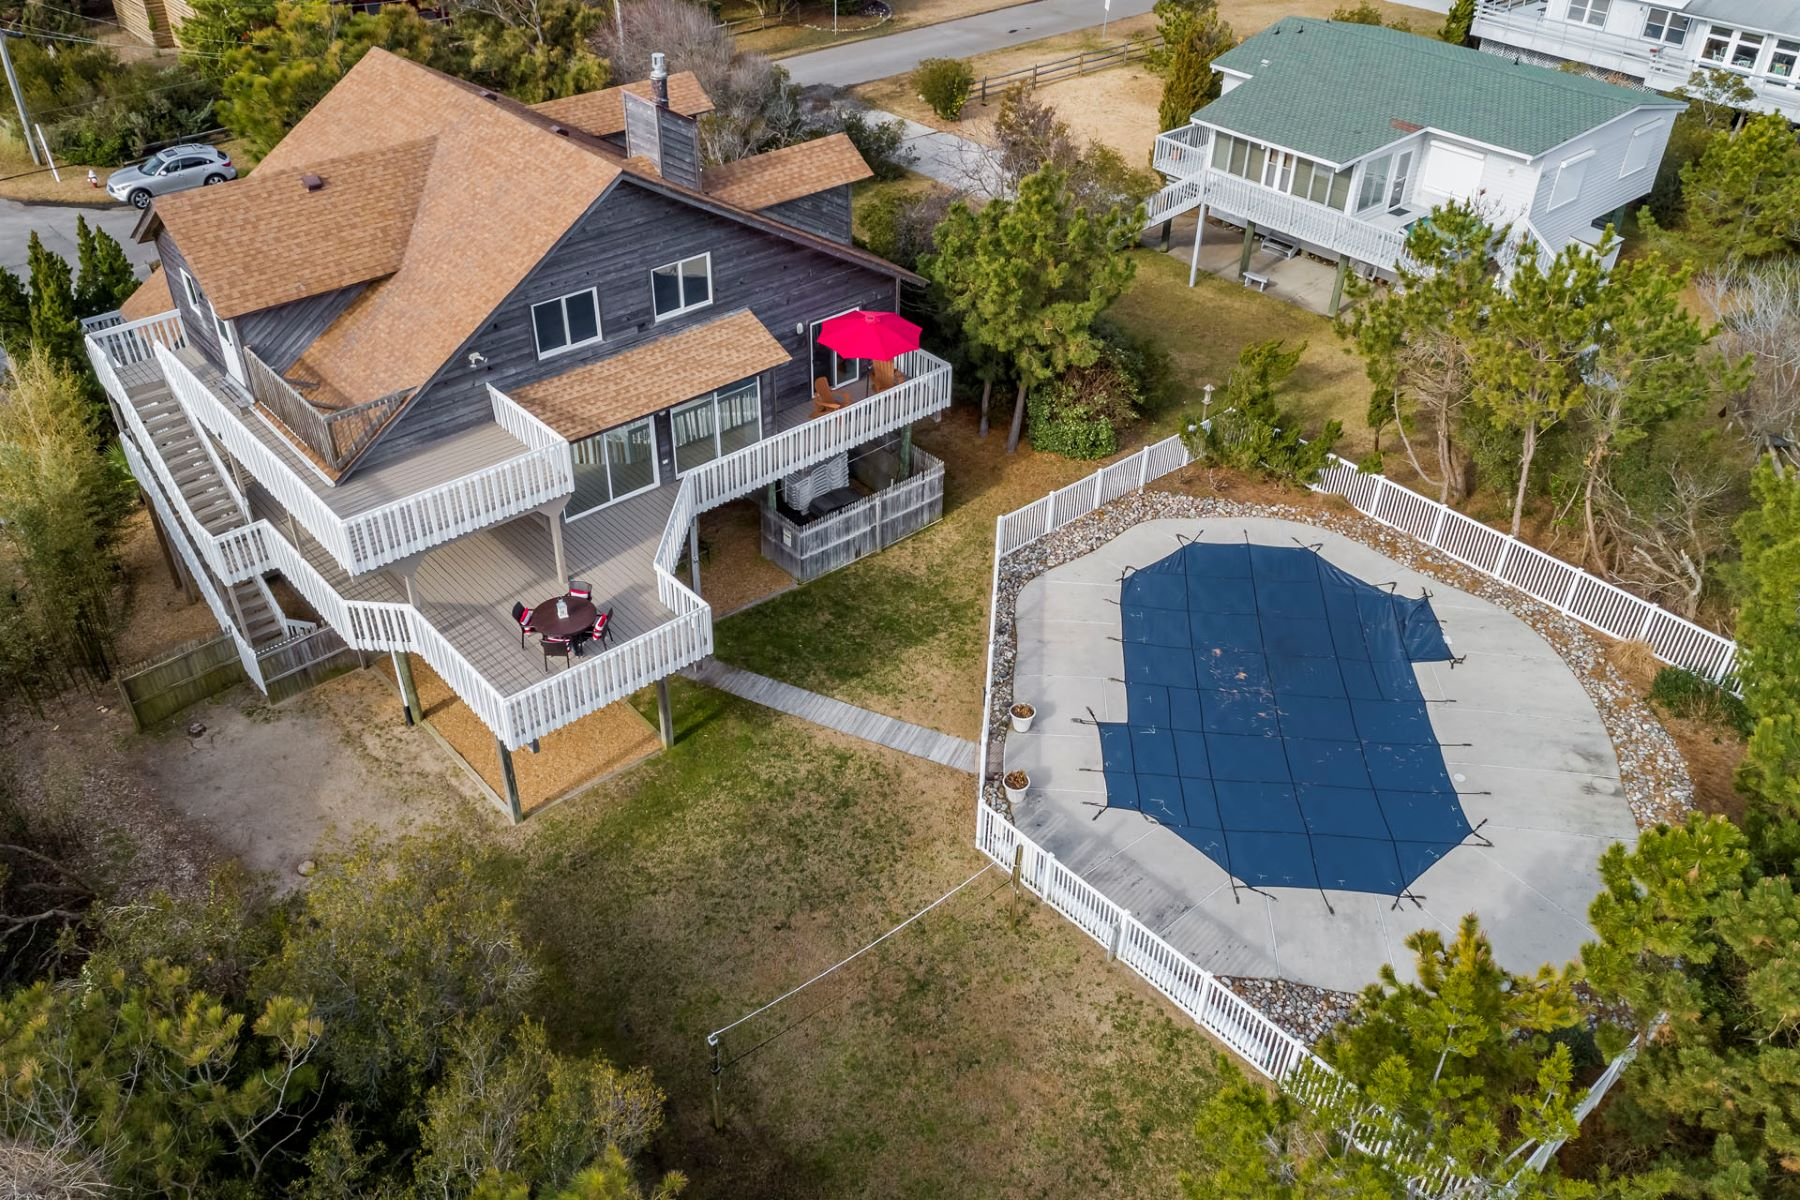 Single Family Home for Sale at Merrytime - Sandbridge Beach 2320 Sandpiper Road Virginia Beach, Virginia 23456 United States